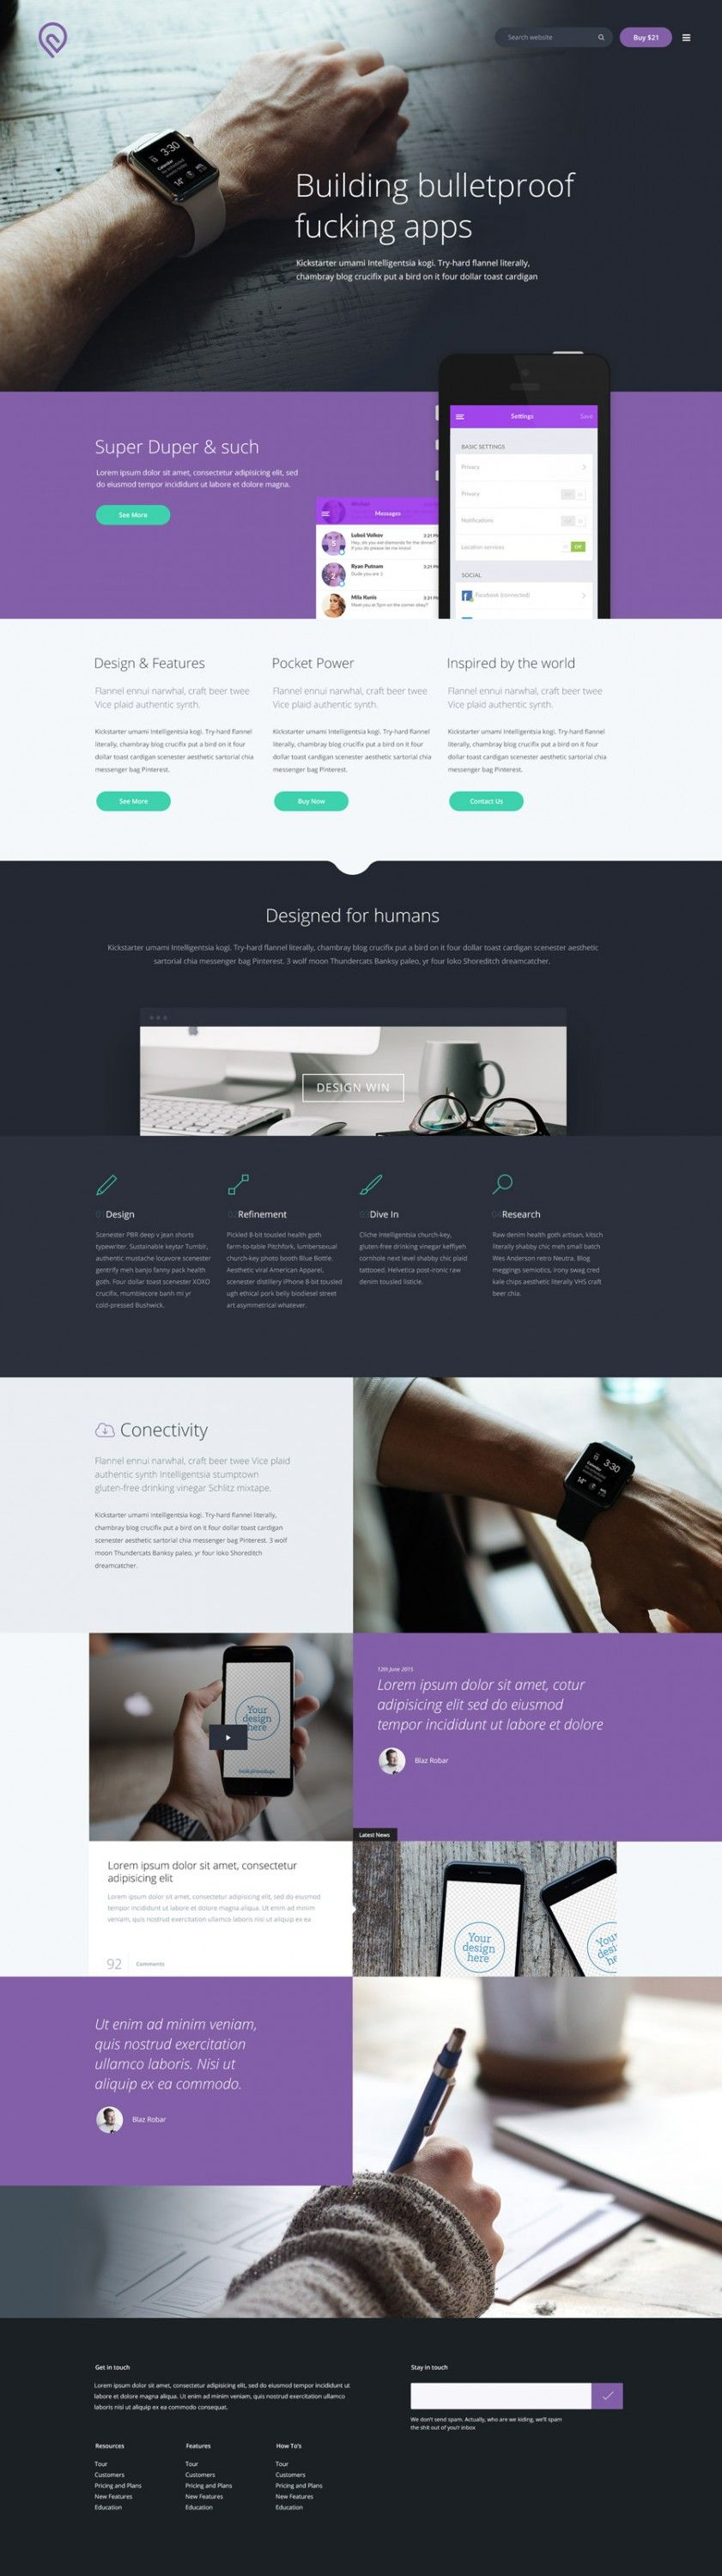 Tork free psd website template web sites pinterest template tork free psd website template pronofoot35fo Choice Image